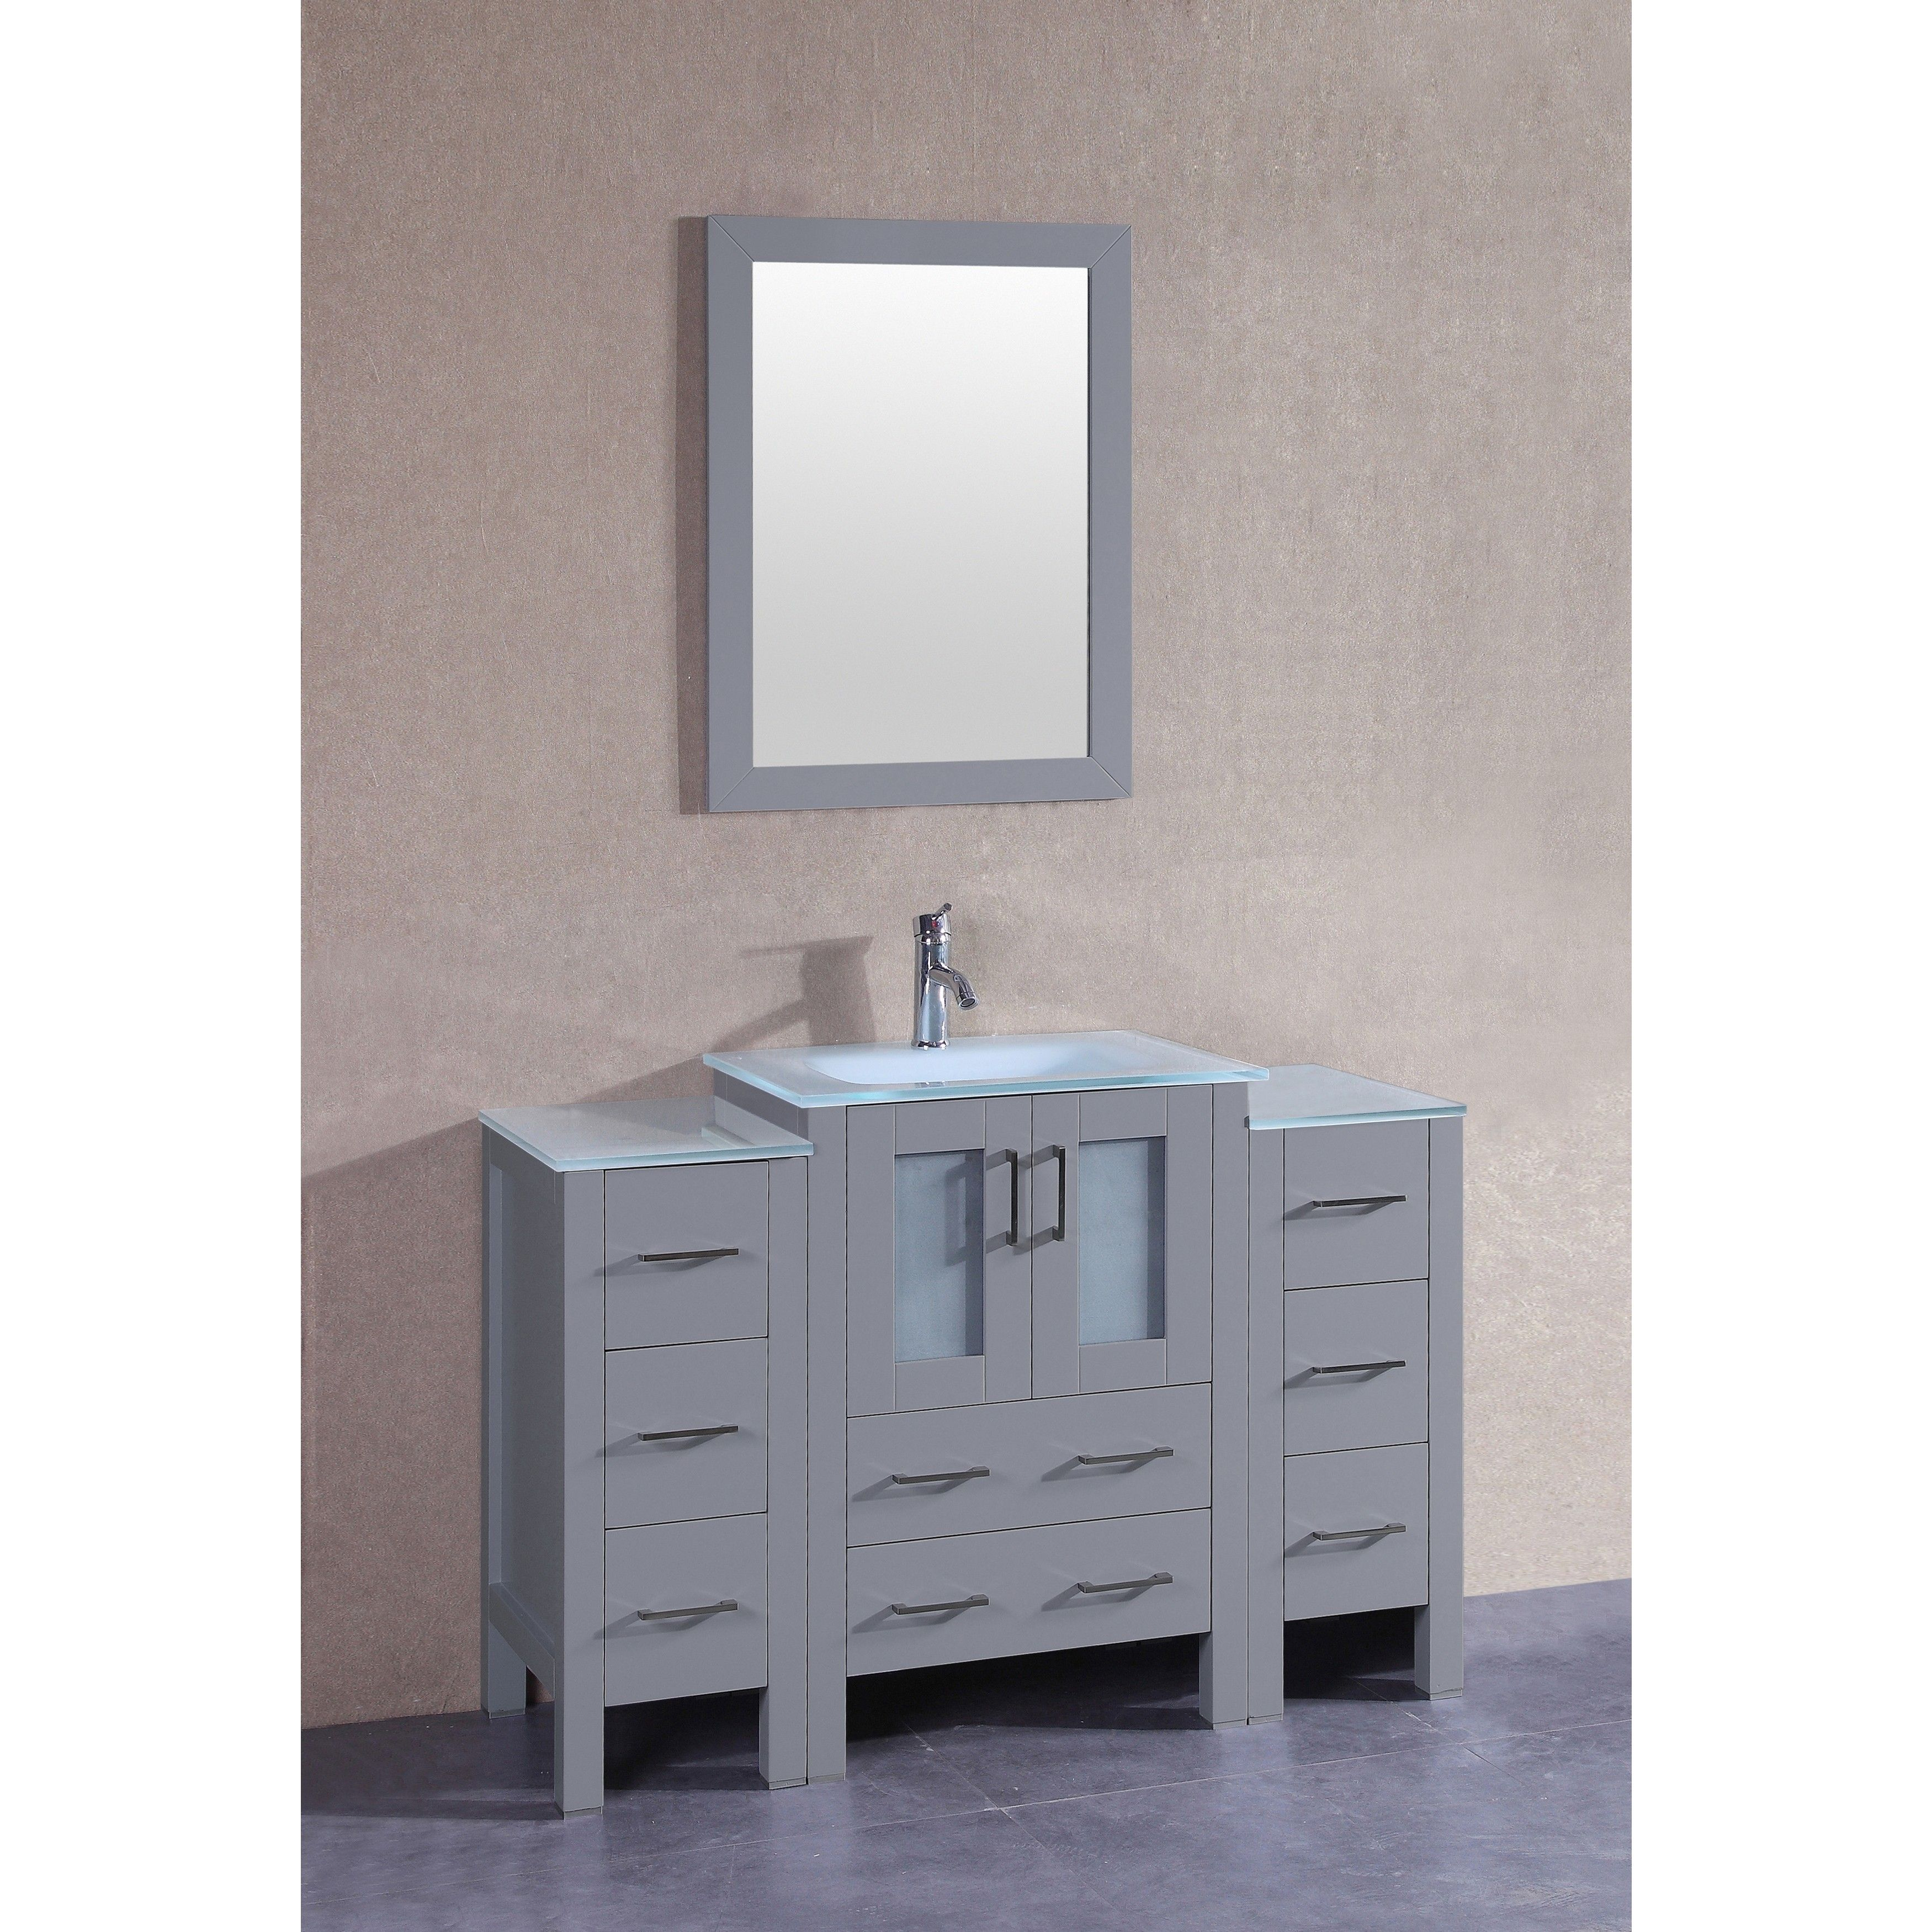 Bosconi 48-inch Single Vanity Set with Frosted Tempered Glass Tops